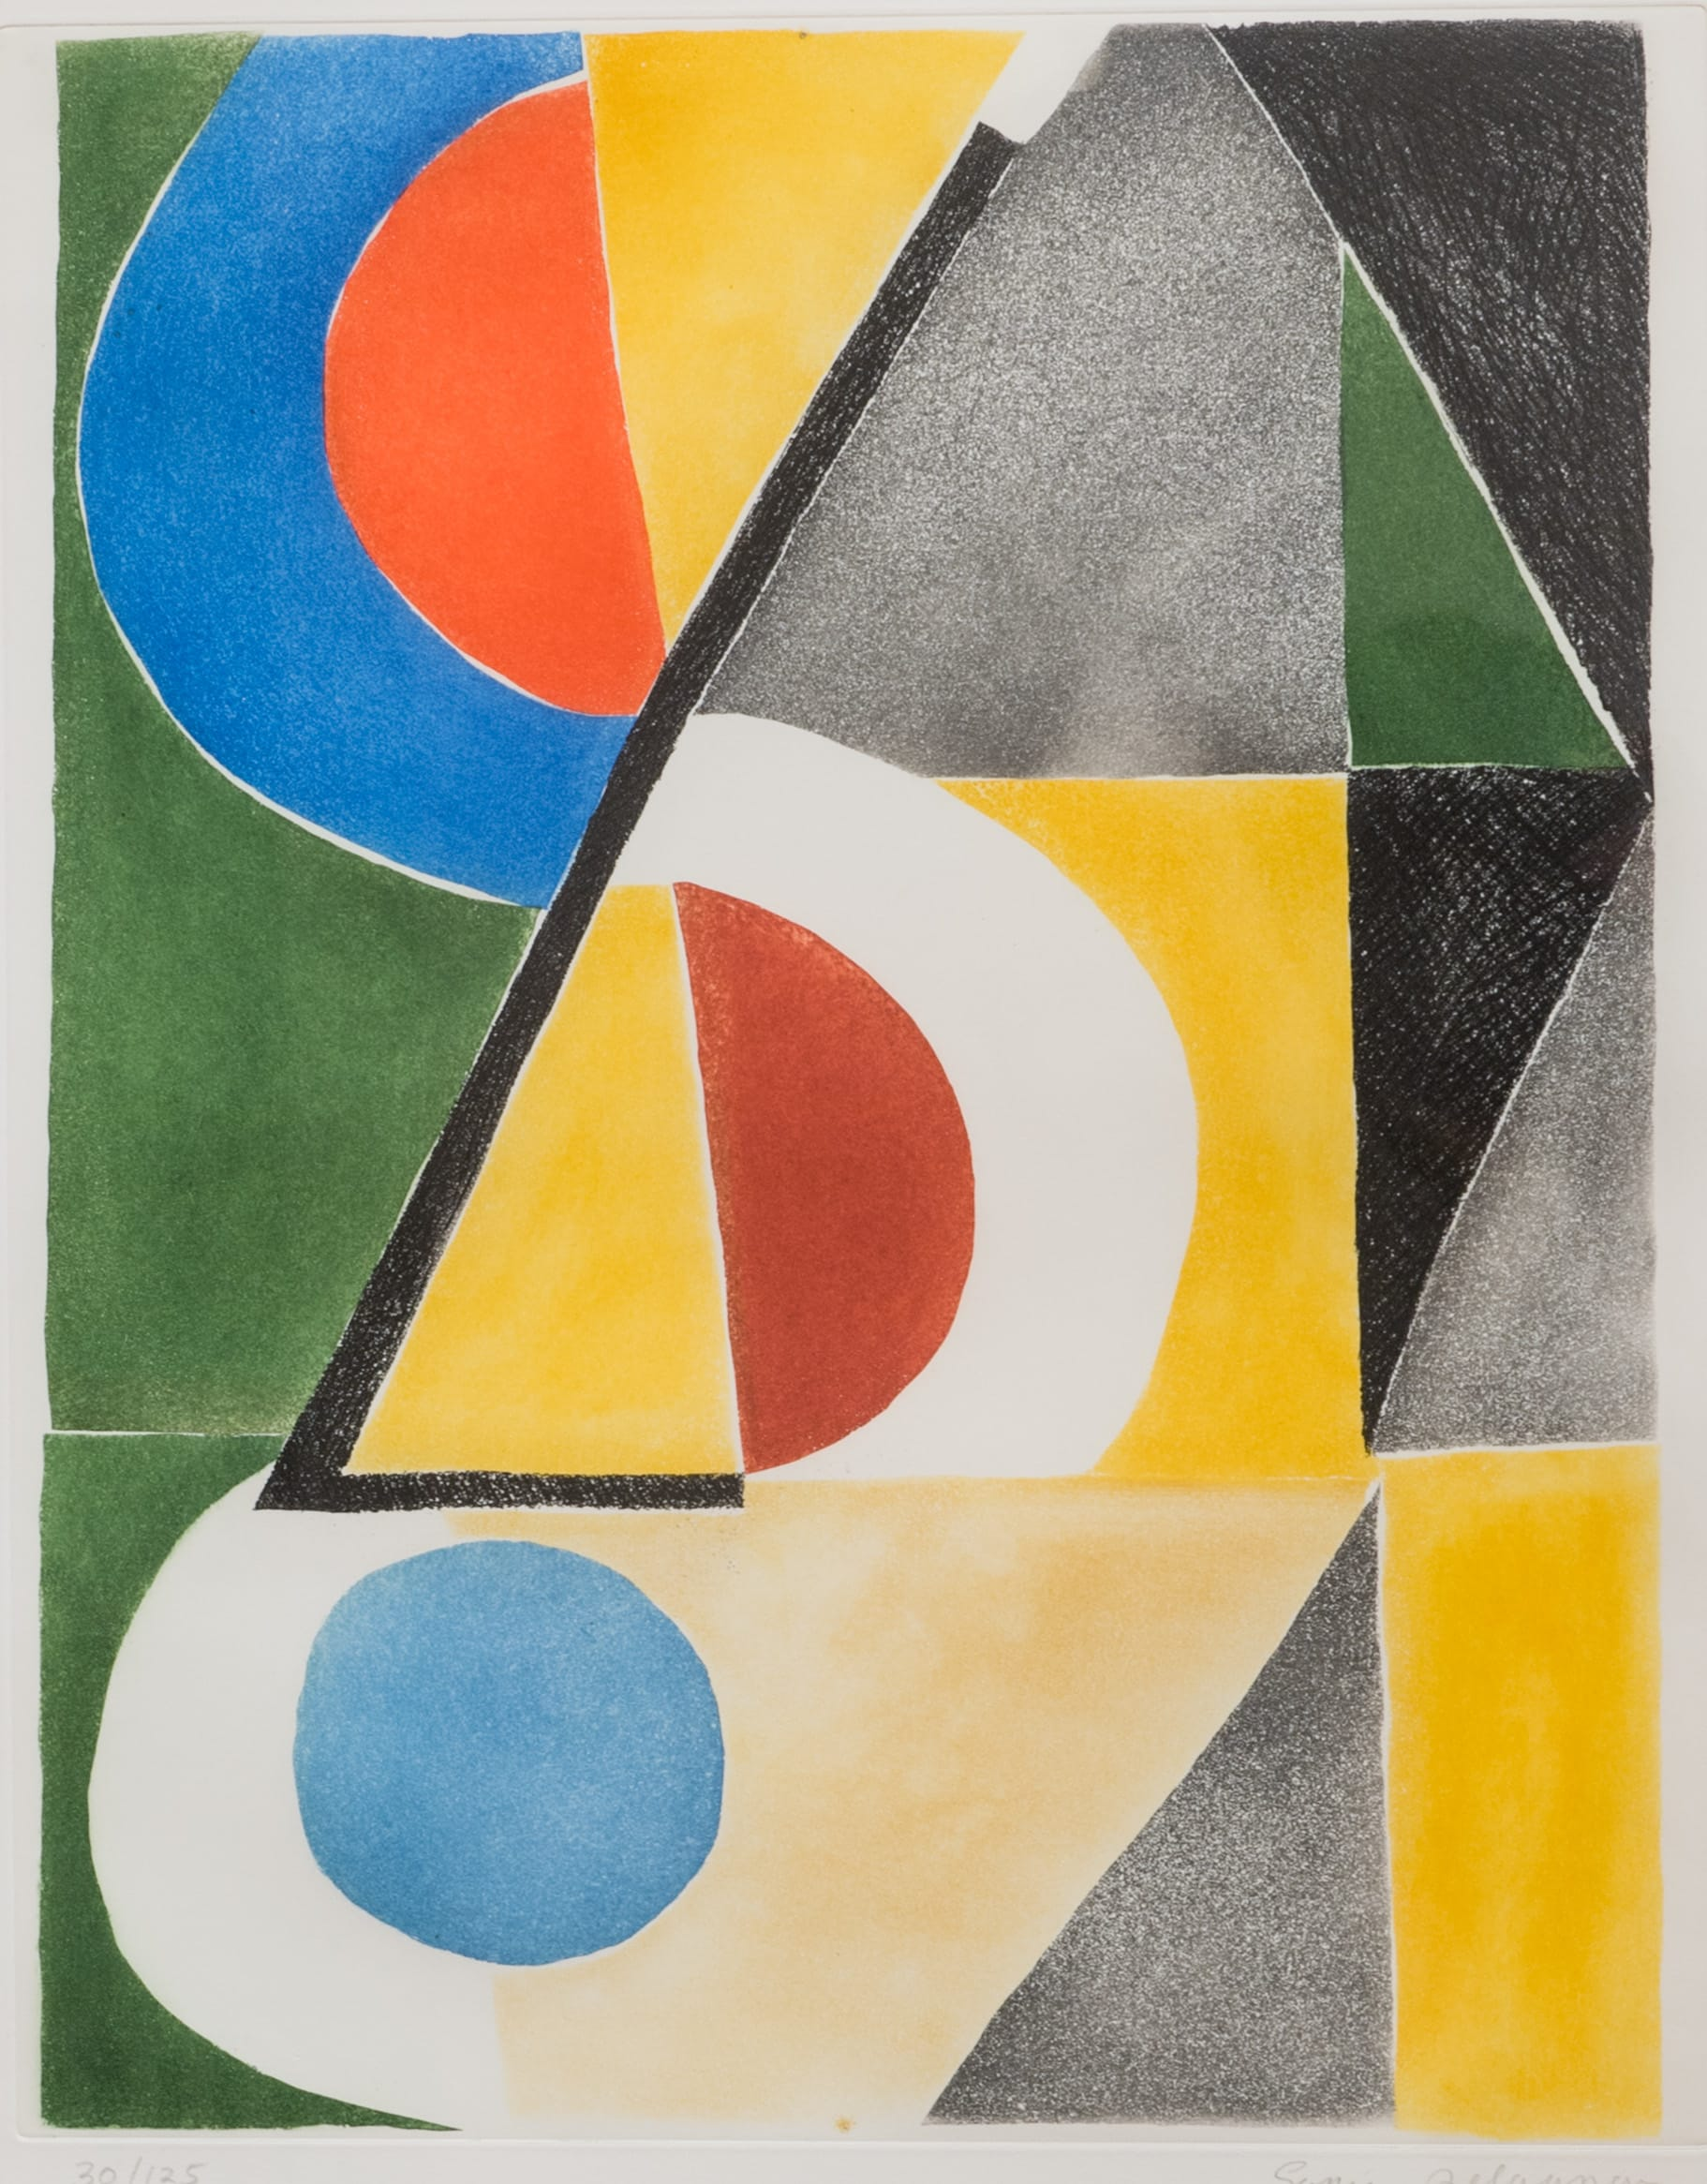 """<span class=""""link fancybox-details-link""""><a href=""""/artists/39-sonia-delaunay/works/442-sonia-delaunay-untitled-1963/"""">View Detail Page</a></span><div class=""""artist""""><strong>Sonia Delaunay</strong></div> 1885 - 1979 <div class=""""title"""">Untitled , 1963</div> <div class=""""medium"""">etching and aquatint on Arches paper</div> <div class=""""dimensions"""">26 x 19 3/4 in<br /> 66 x 50 cm</div>"""